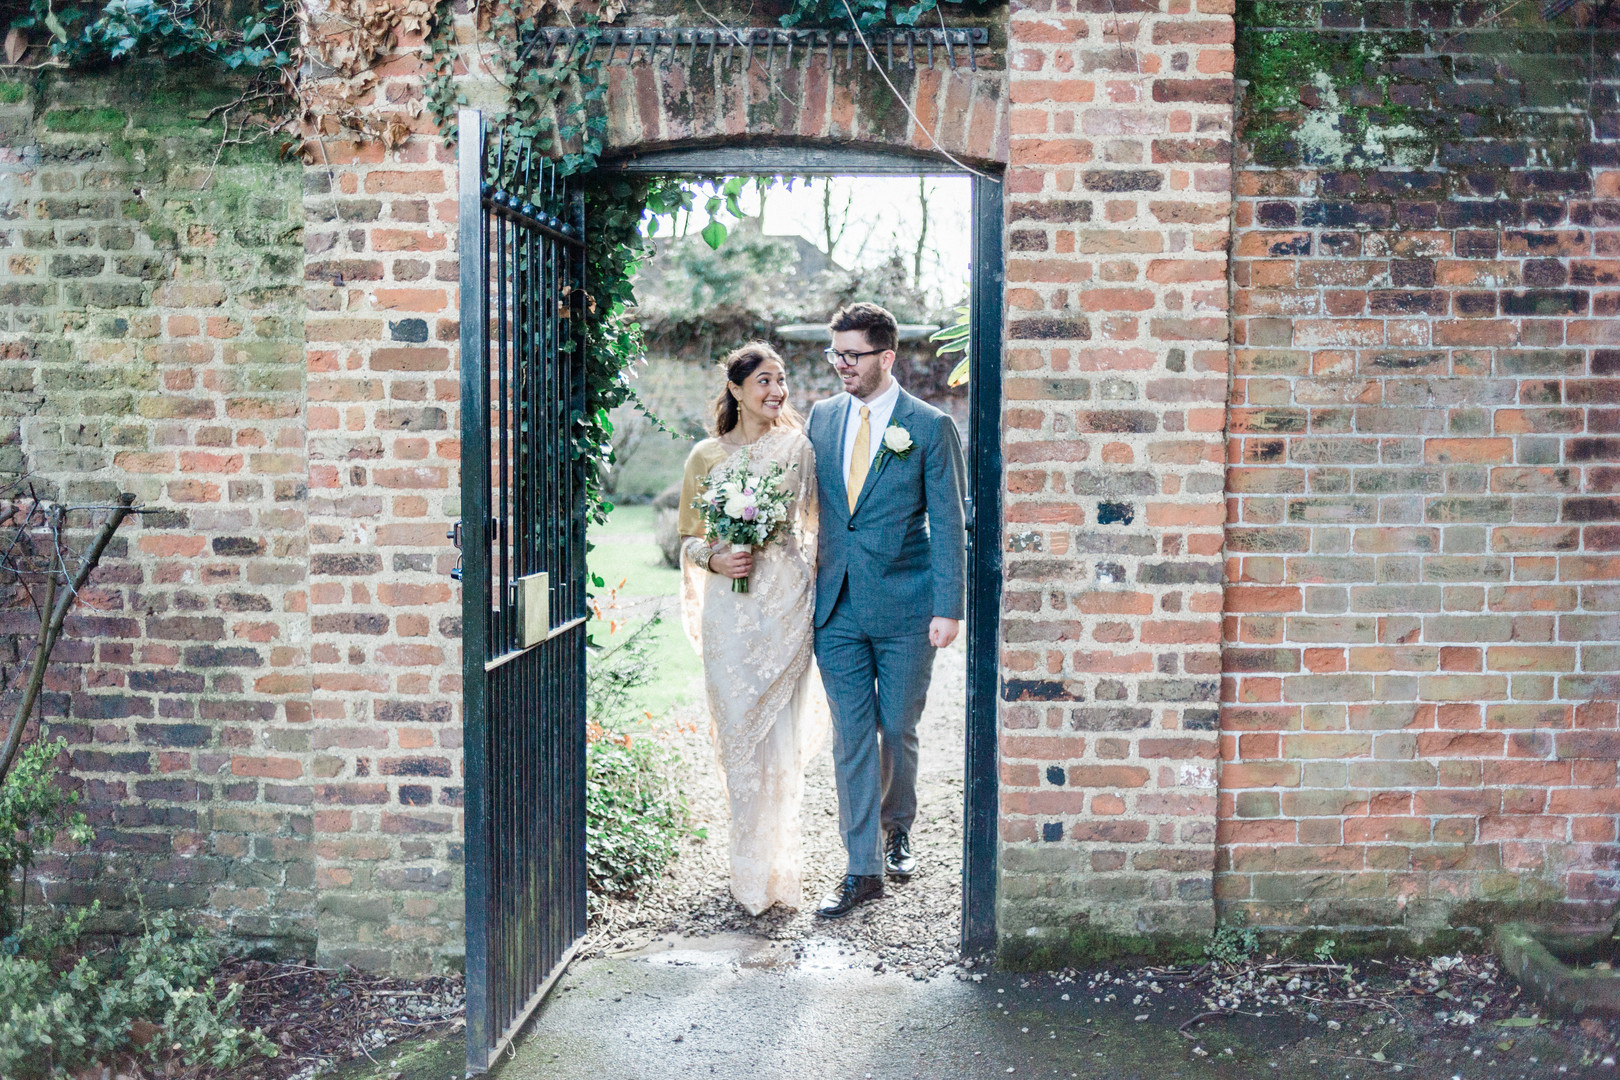 Natural wedding photo of bride and groom at Charlton House wedding